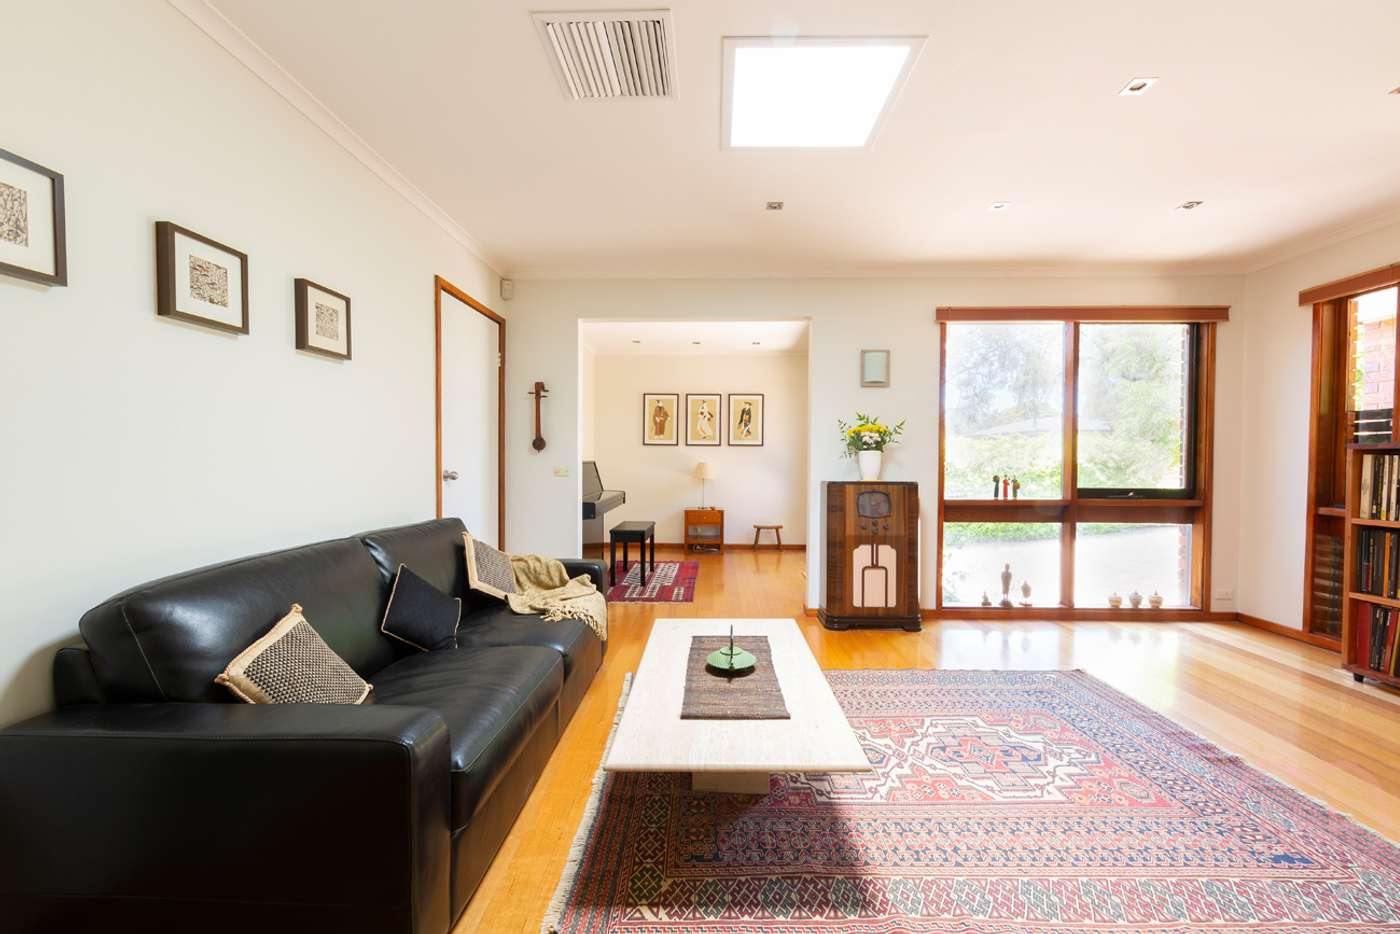 Main view of Homely house listing, 20 Alroy Circuit, Hawker ACT 2614